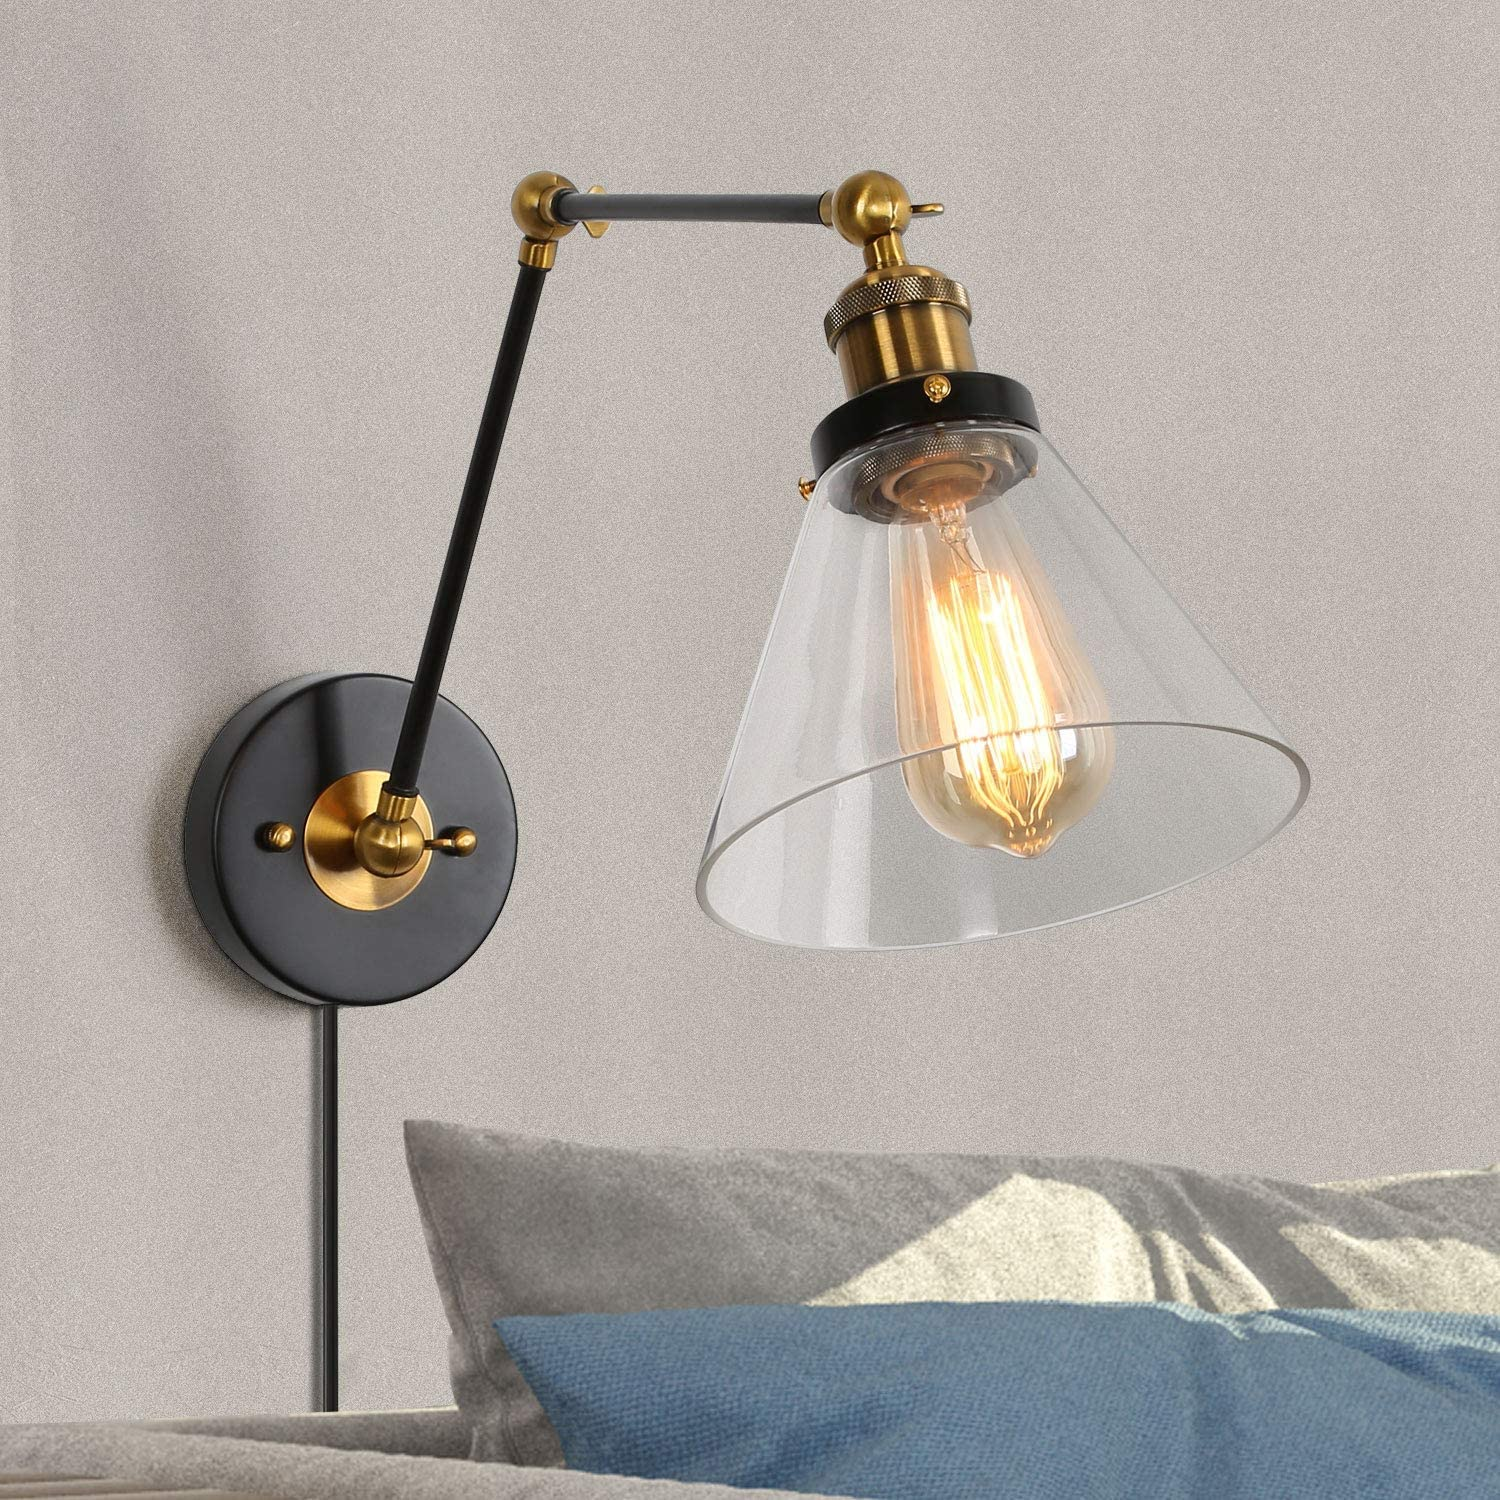 Swing Arm Wall Sconce Plug-in or Hardwire Lamp Lighting wi Free shipping New 5% OFF